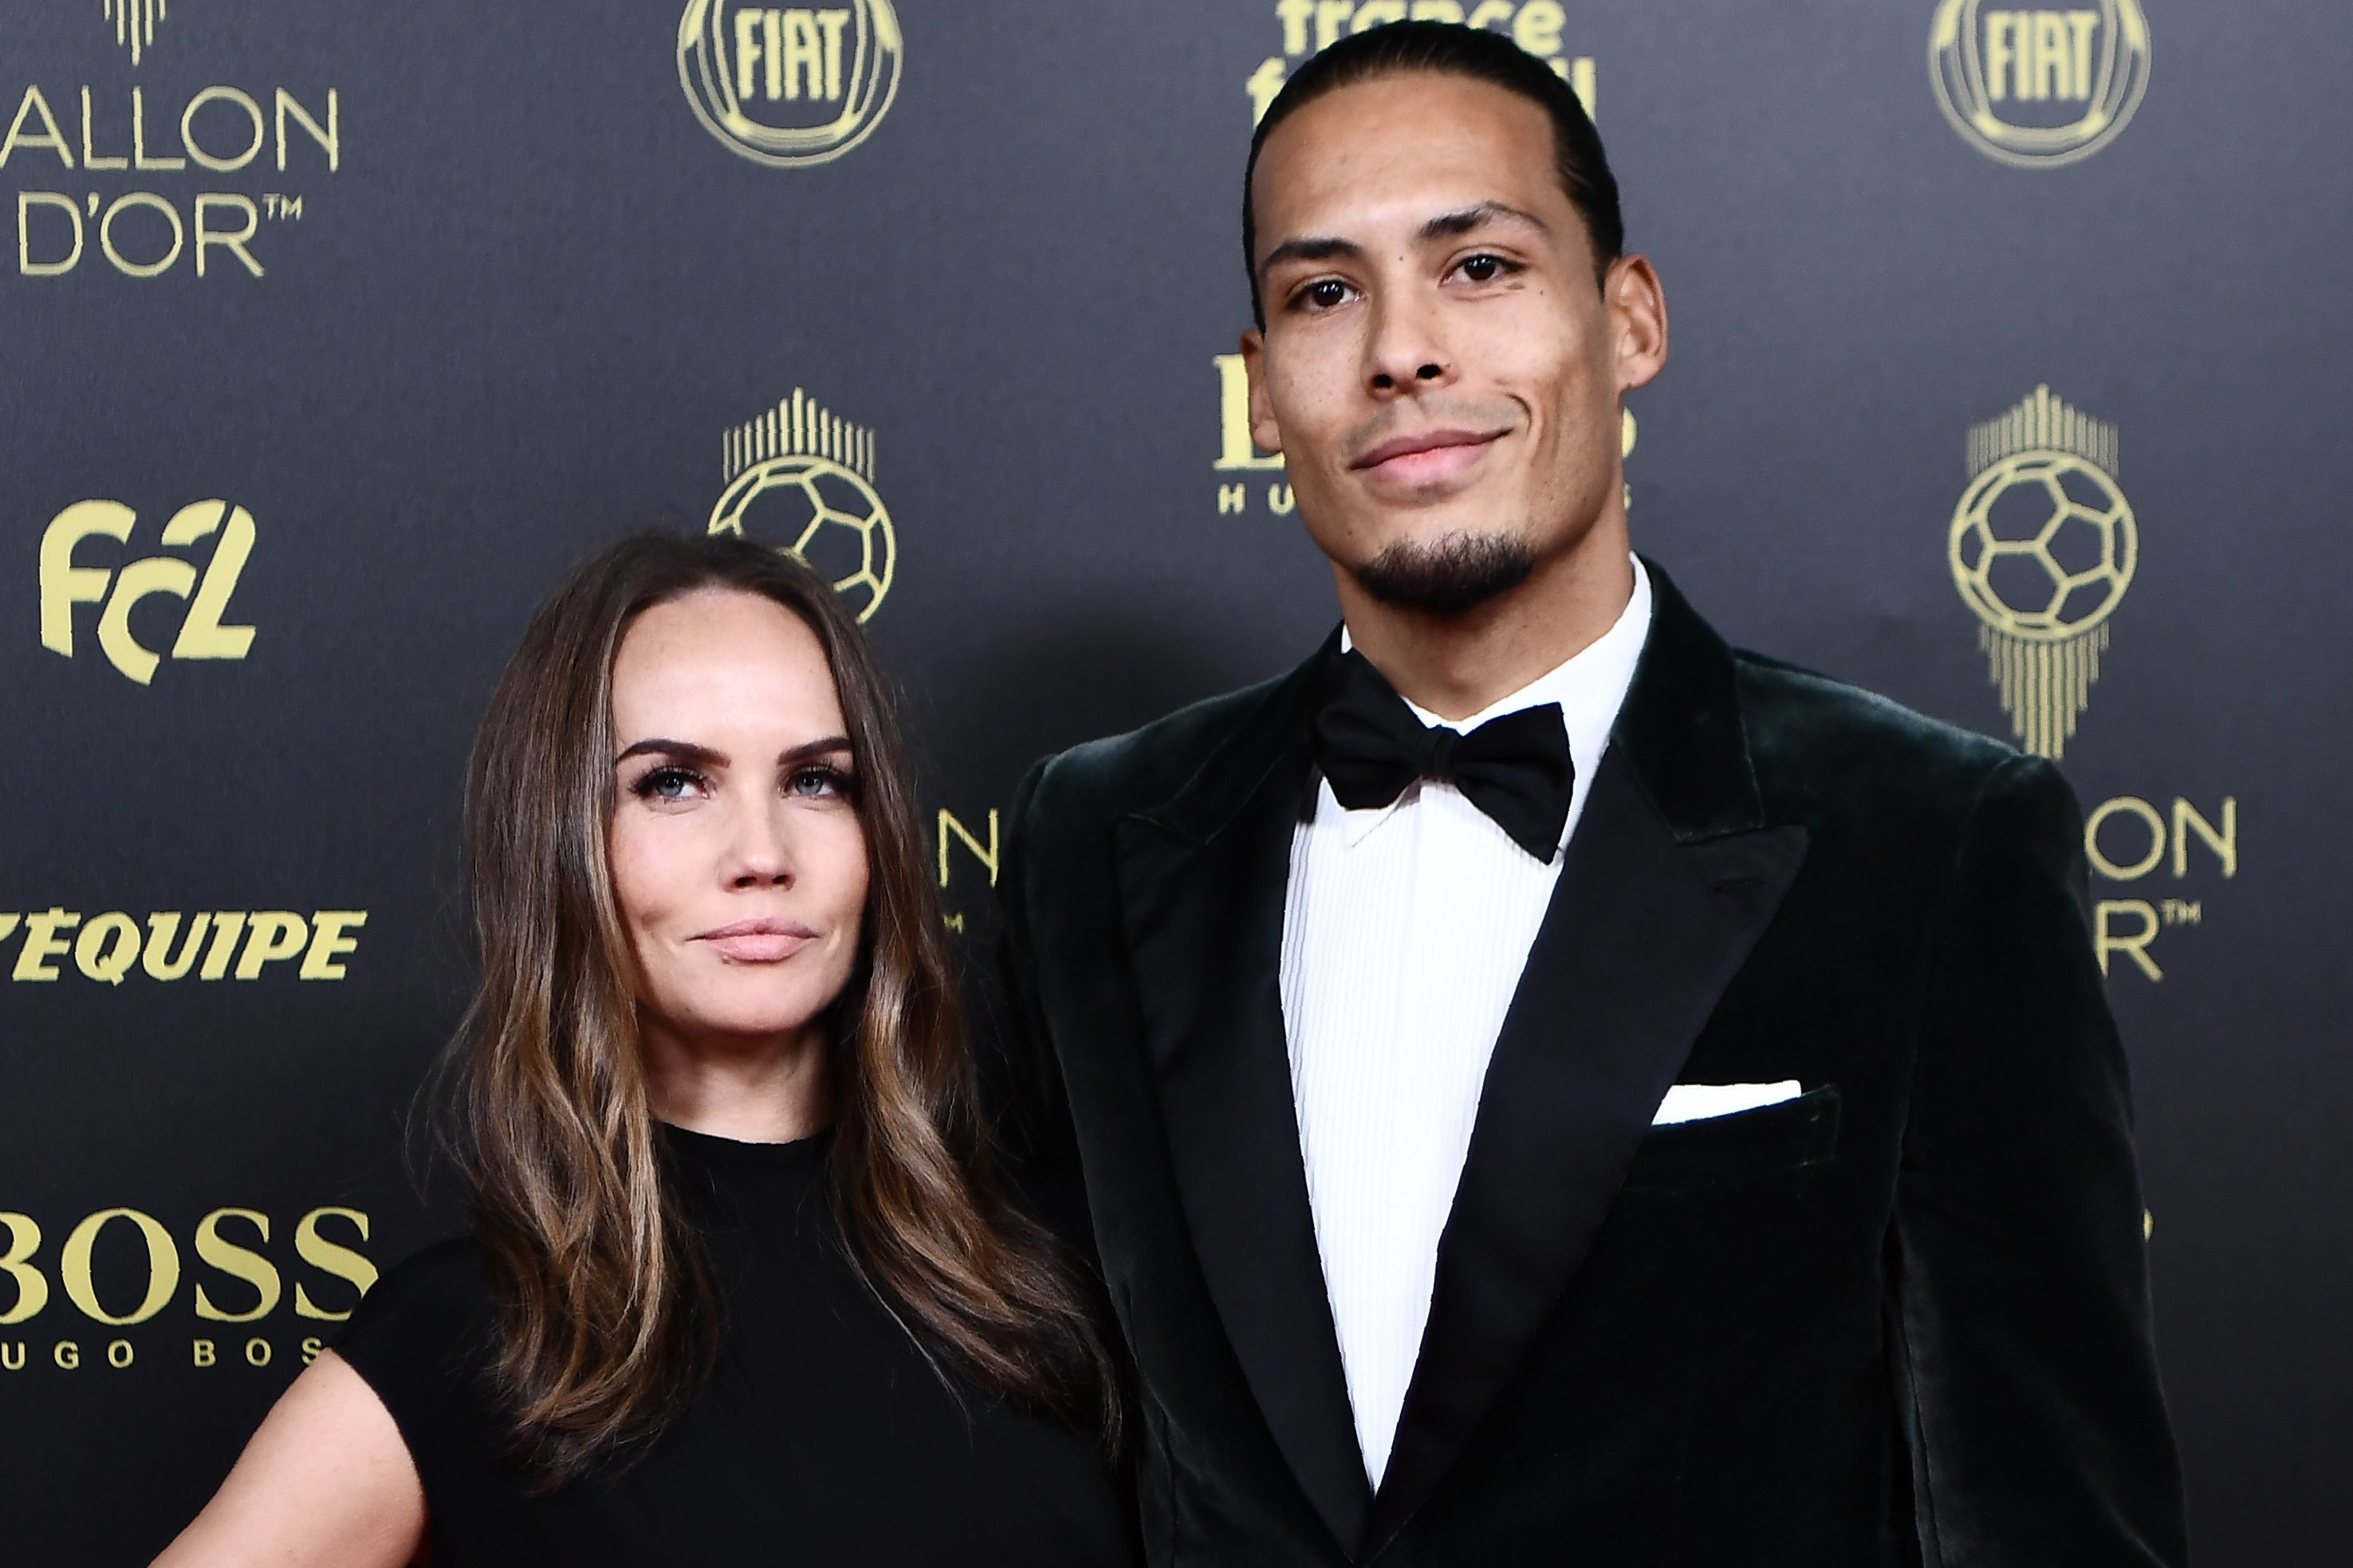 Liverpool defender Virgil van Dijk had a great year, but he knew the Ballon d'Or was Lionel Messi's to lose yet again. (Photo by ANNE-CHRISTINE POUJOULAT/AFP via Getty Images)